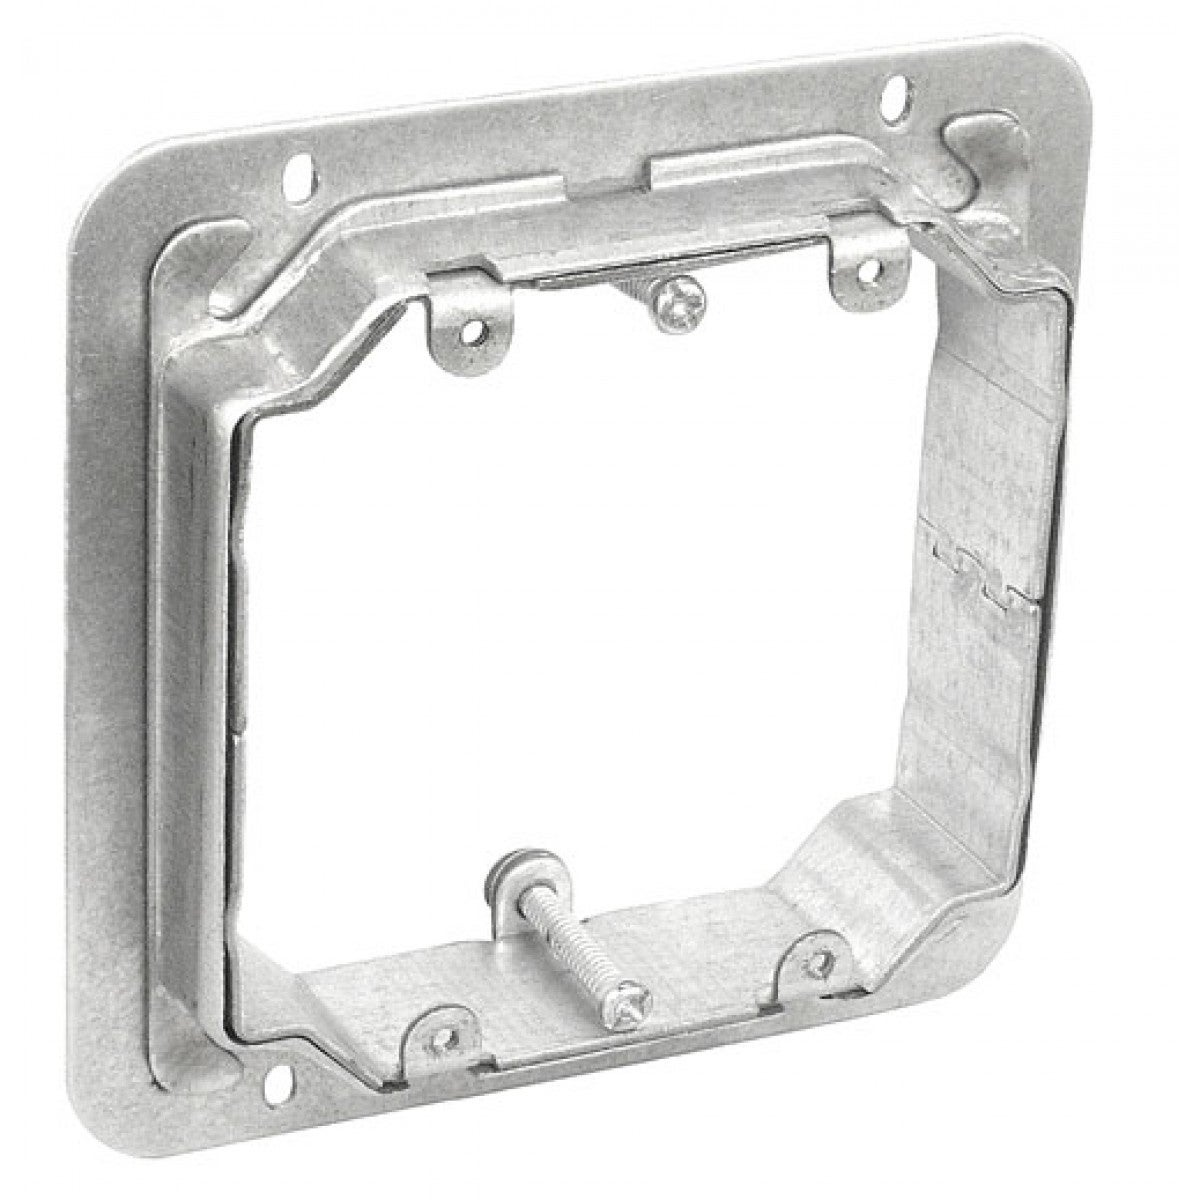 2 Pcs, 4-11/16 Two Gang Adjustable Depth Device Ring, 3/4 to 1-1/2 in. Raised, Zinc Plated Steel